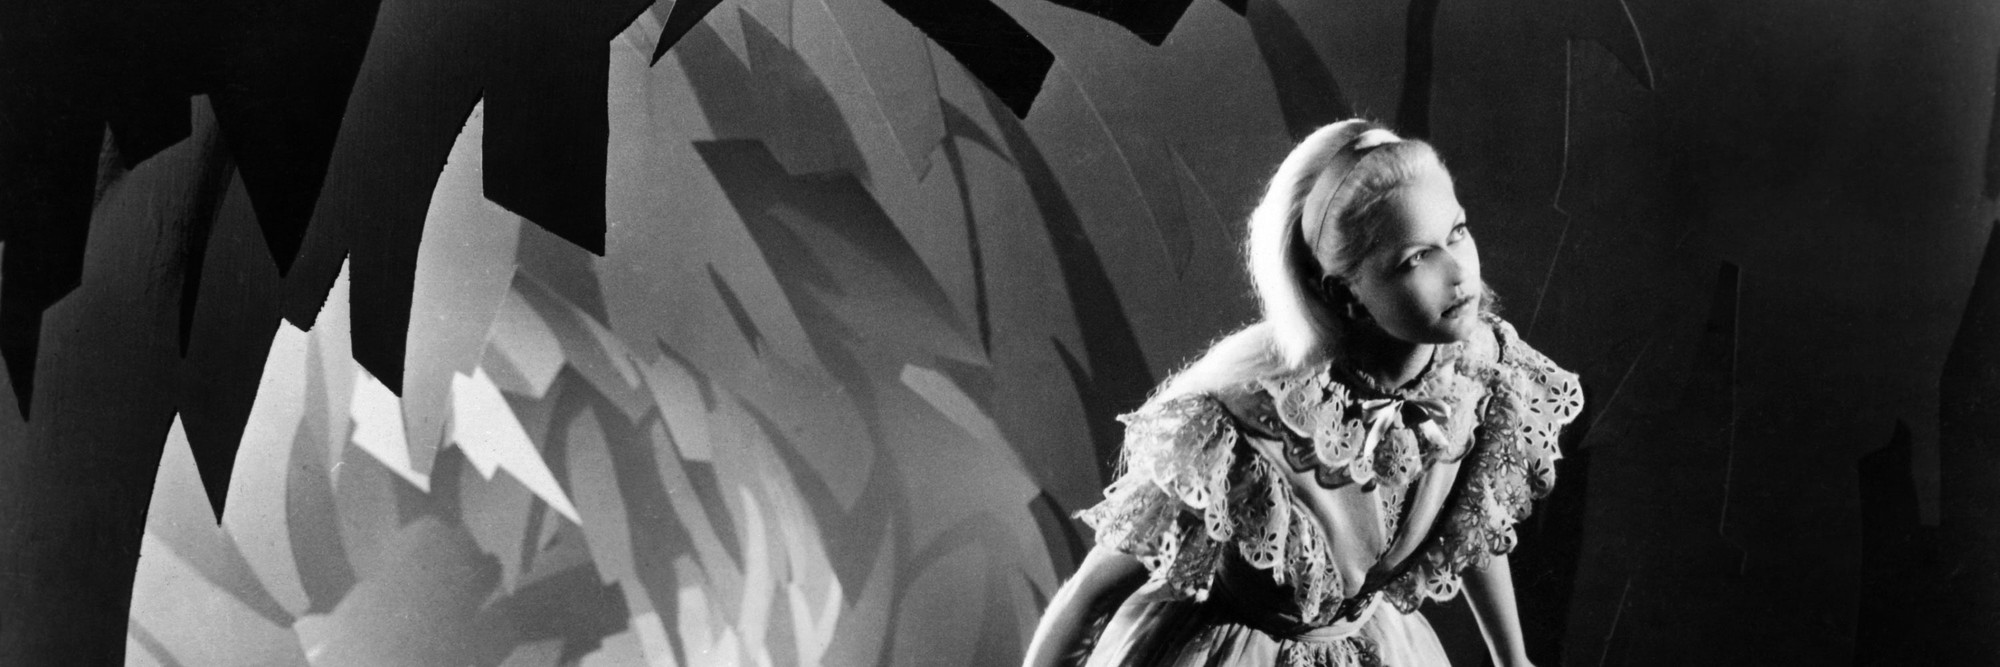 <em>Alice in Wonderland</em>. 1948. Great Britain/France. Directed by Dallas Bower and Lou Bunin. Image courtesy of Photofest